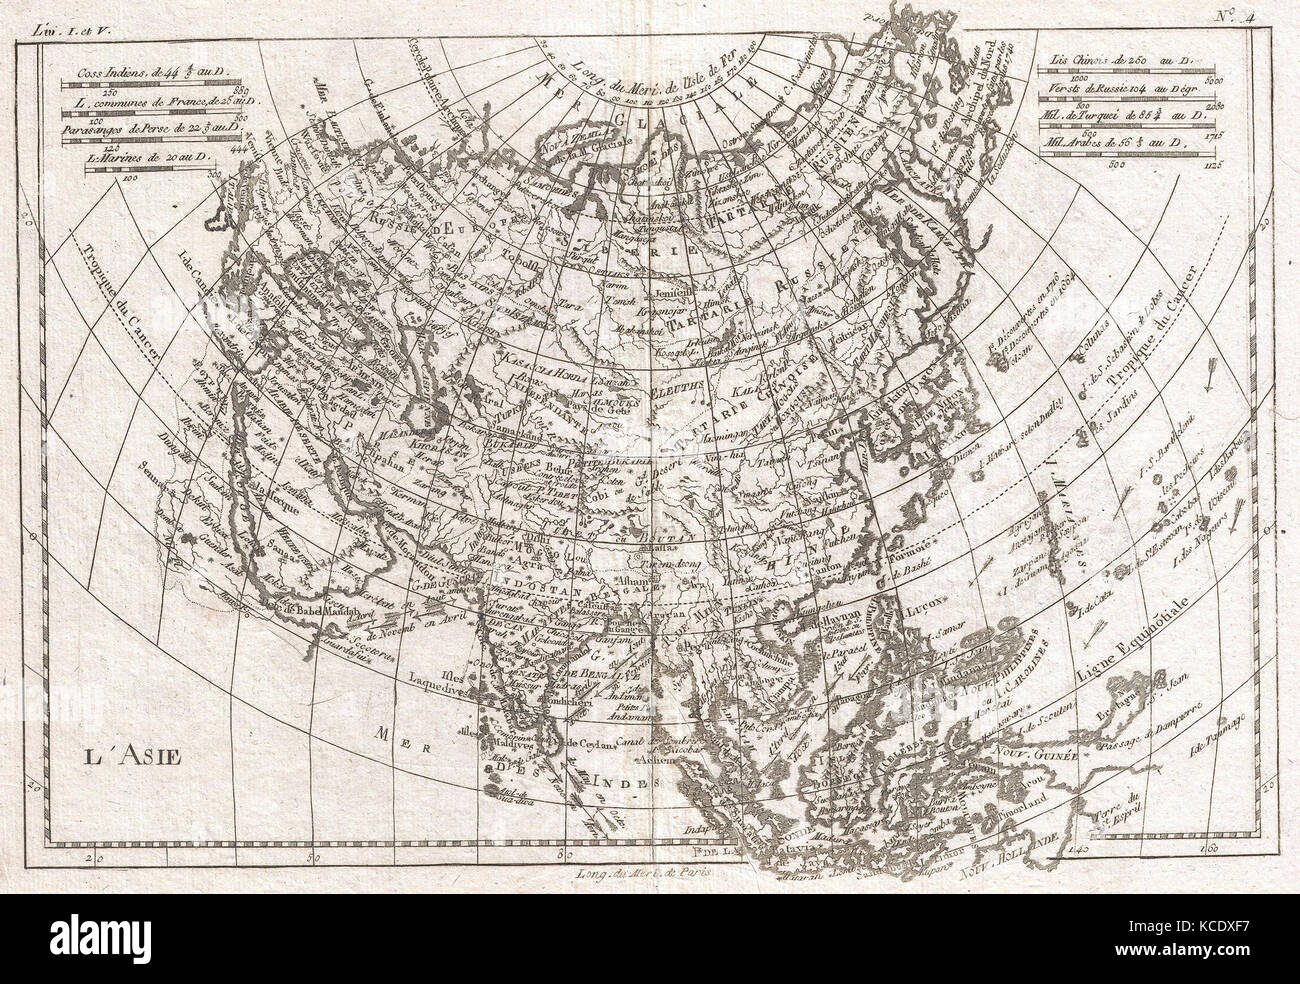 1780, Raynal and Bonne Map of Asia, Rigobert Bonne 1727 – 1794 - Stock Image